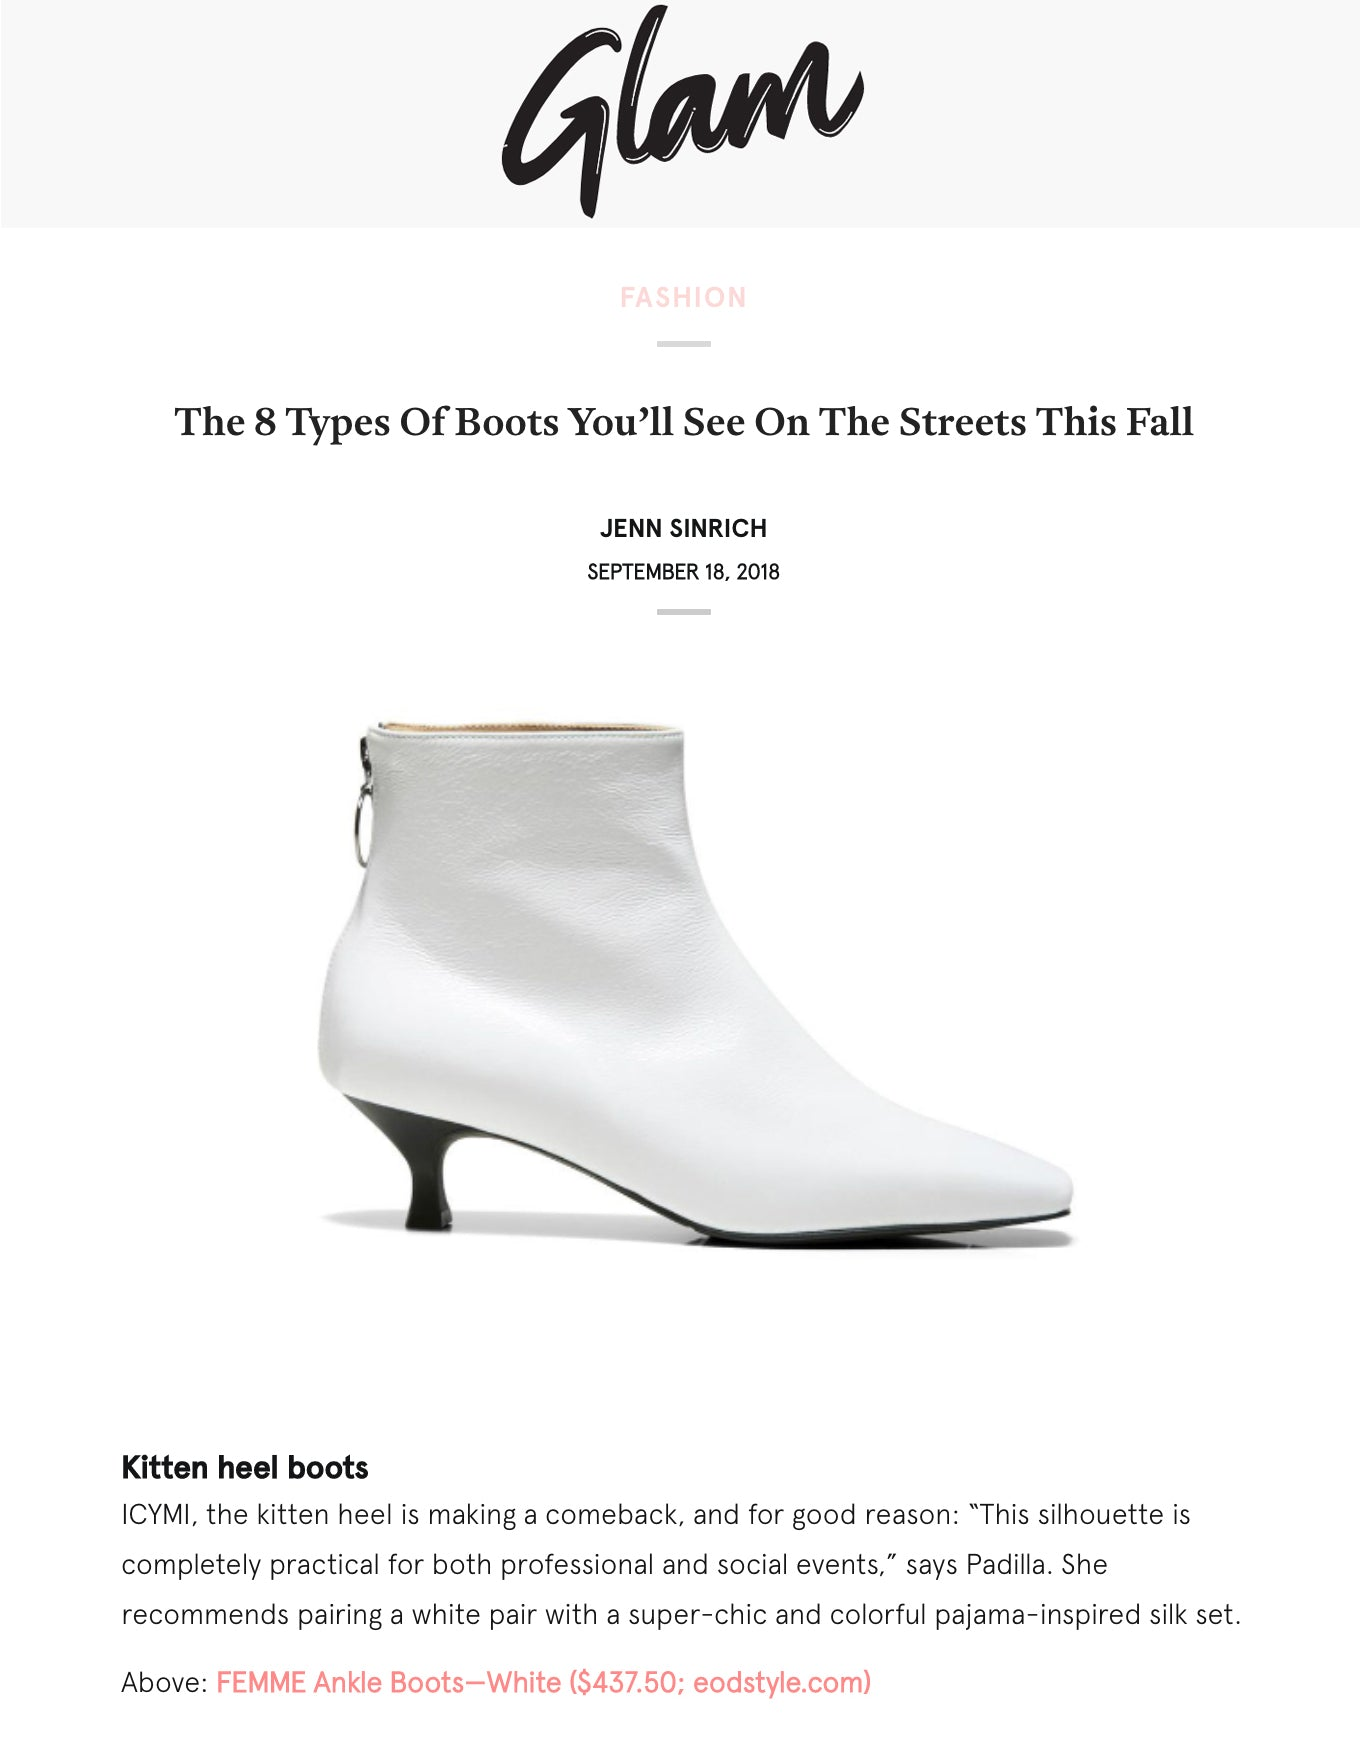 Glam fashion and lifestyle platform featuring ASHLEY LIM Femme kitten heel boots for Fall